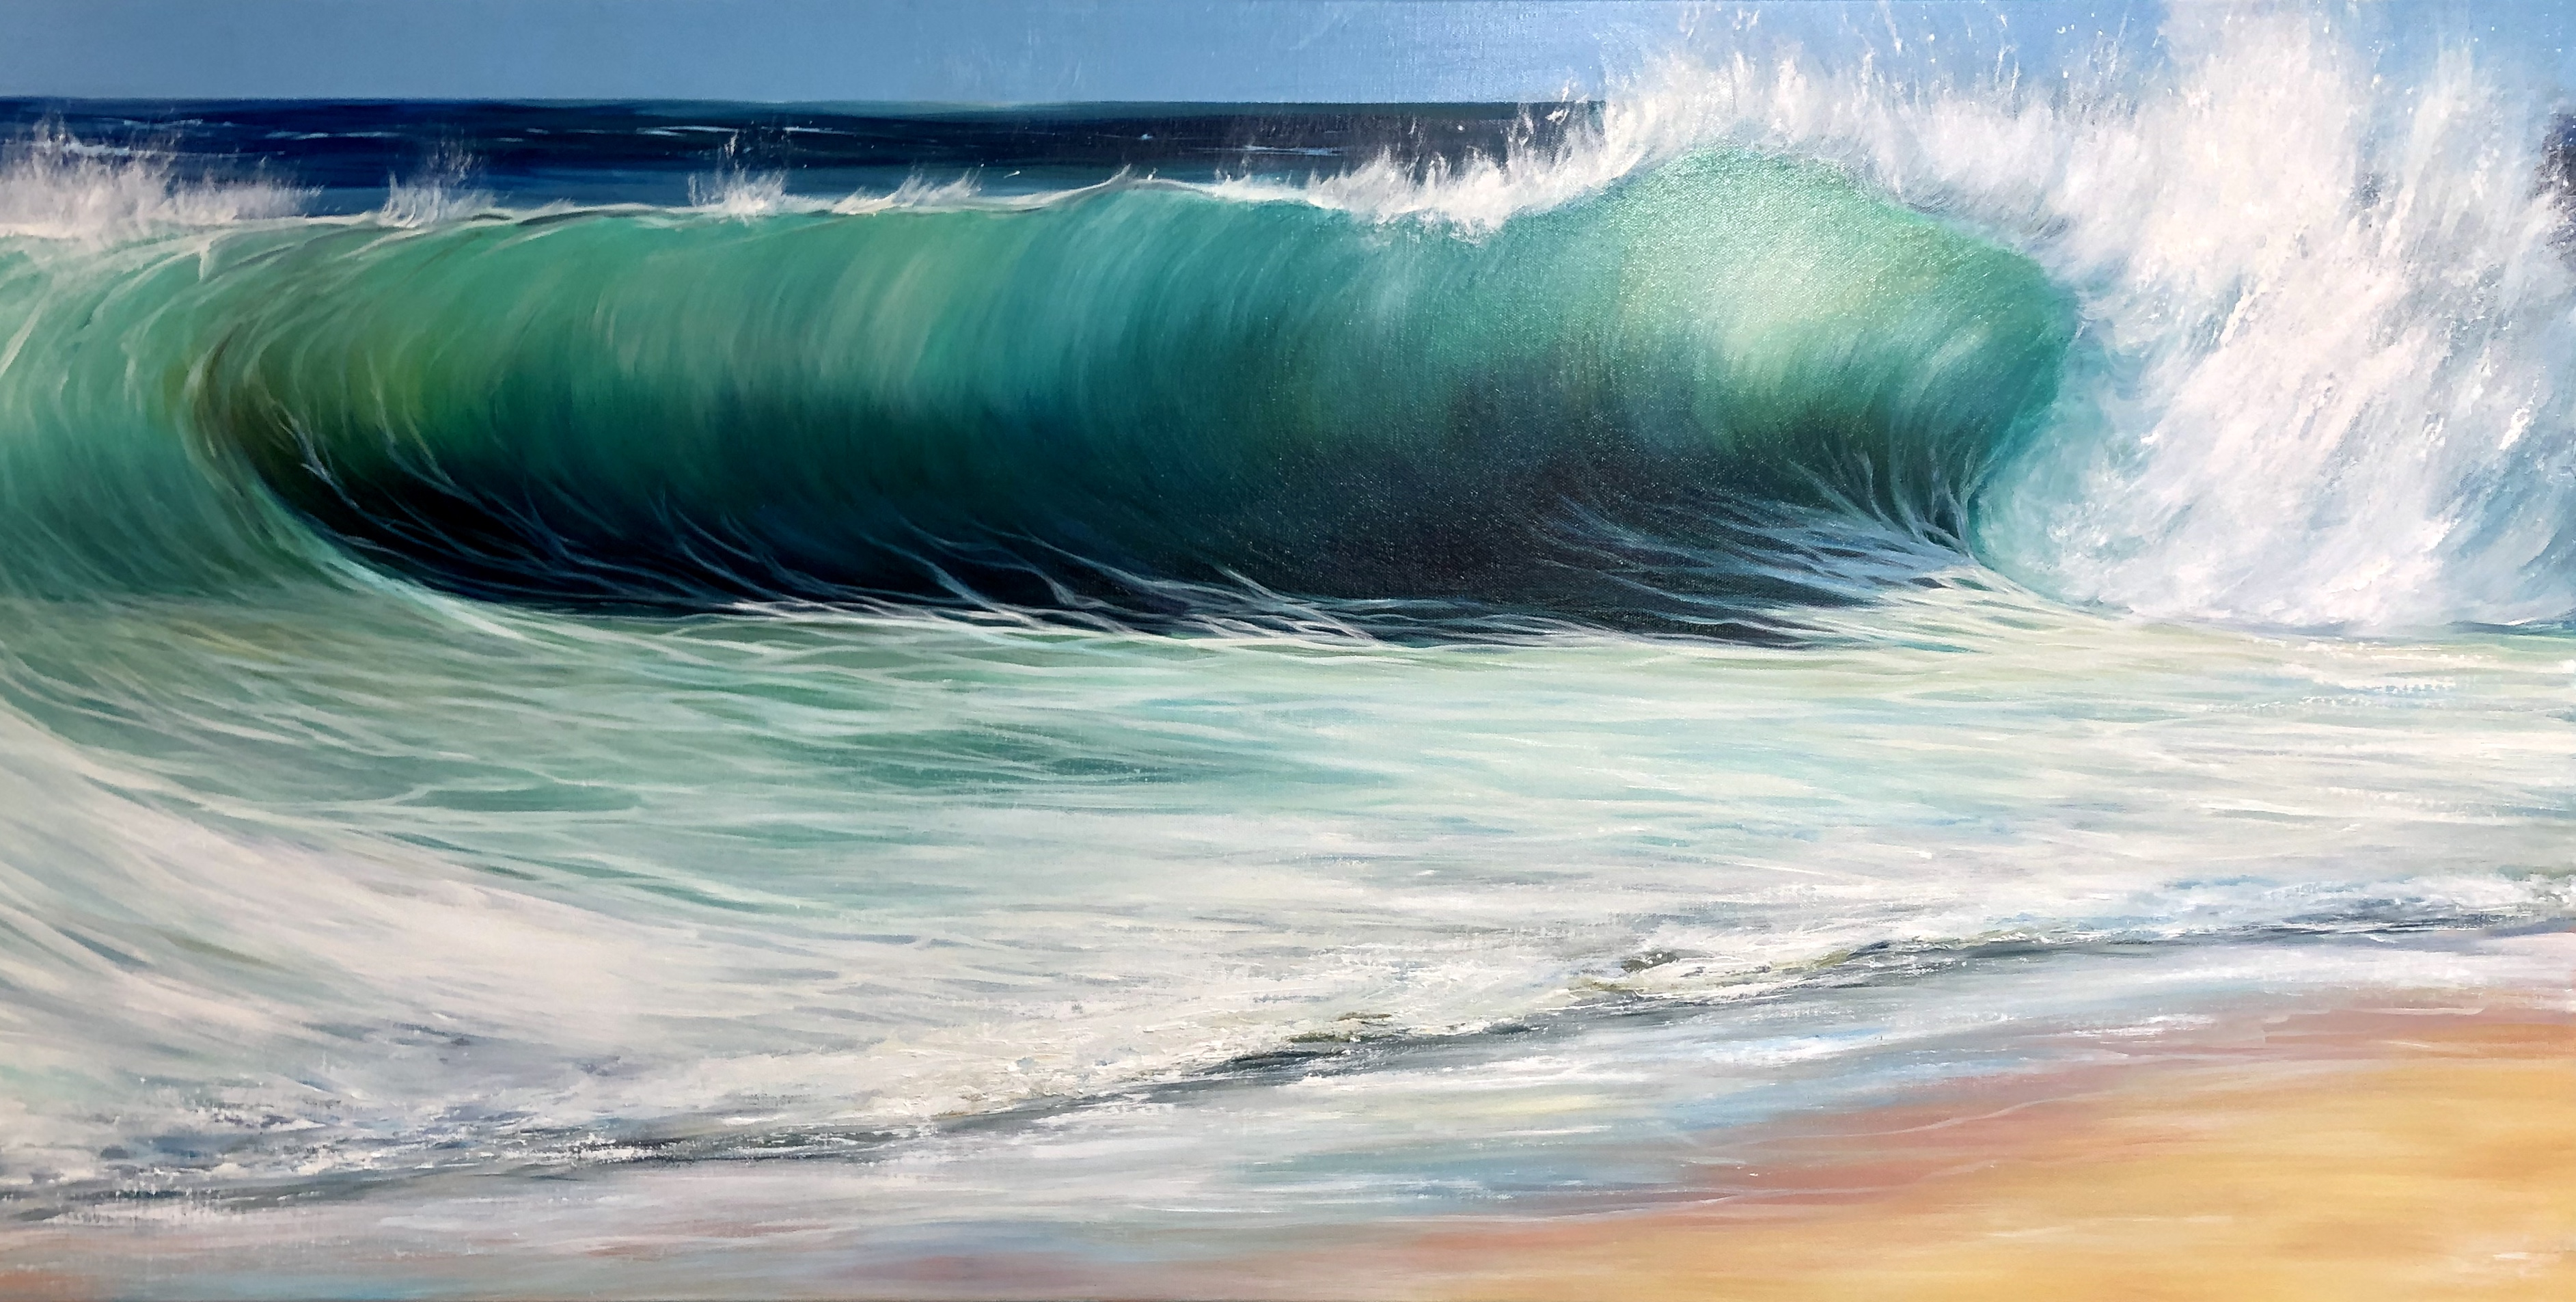 Ocean Beach III Original oil painting on canvas. Width 122cm x Height 61cm or 48 x 24 inches. Signed. Unframed. With a certificate of authenticity.